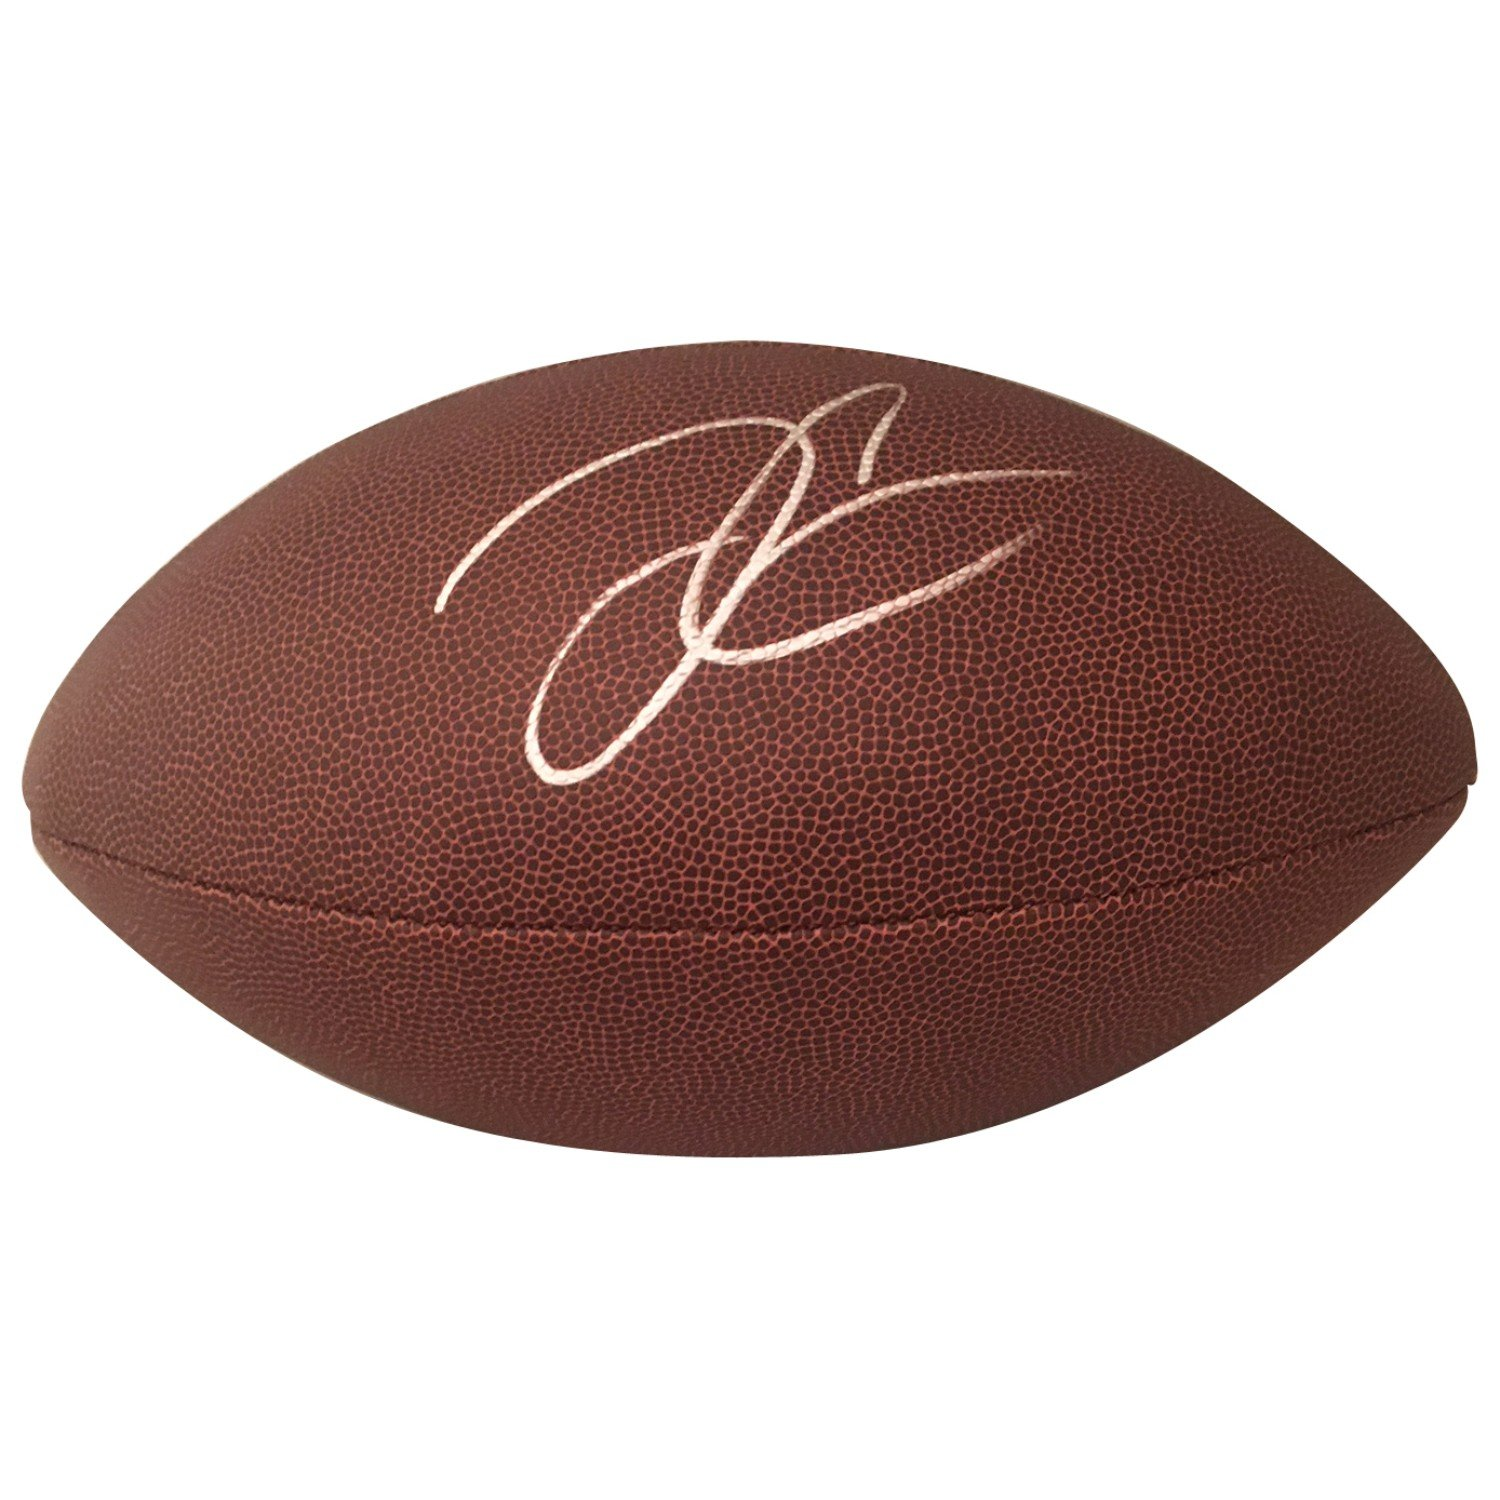 Derek Carr Autographed Oakland Raiders NFL Signed Football PSA DNA COA Powers Collectibles